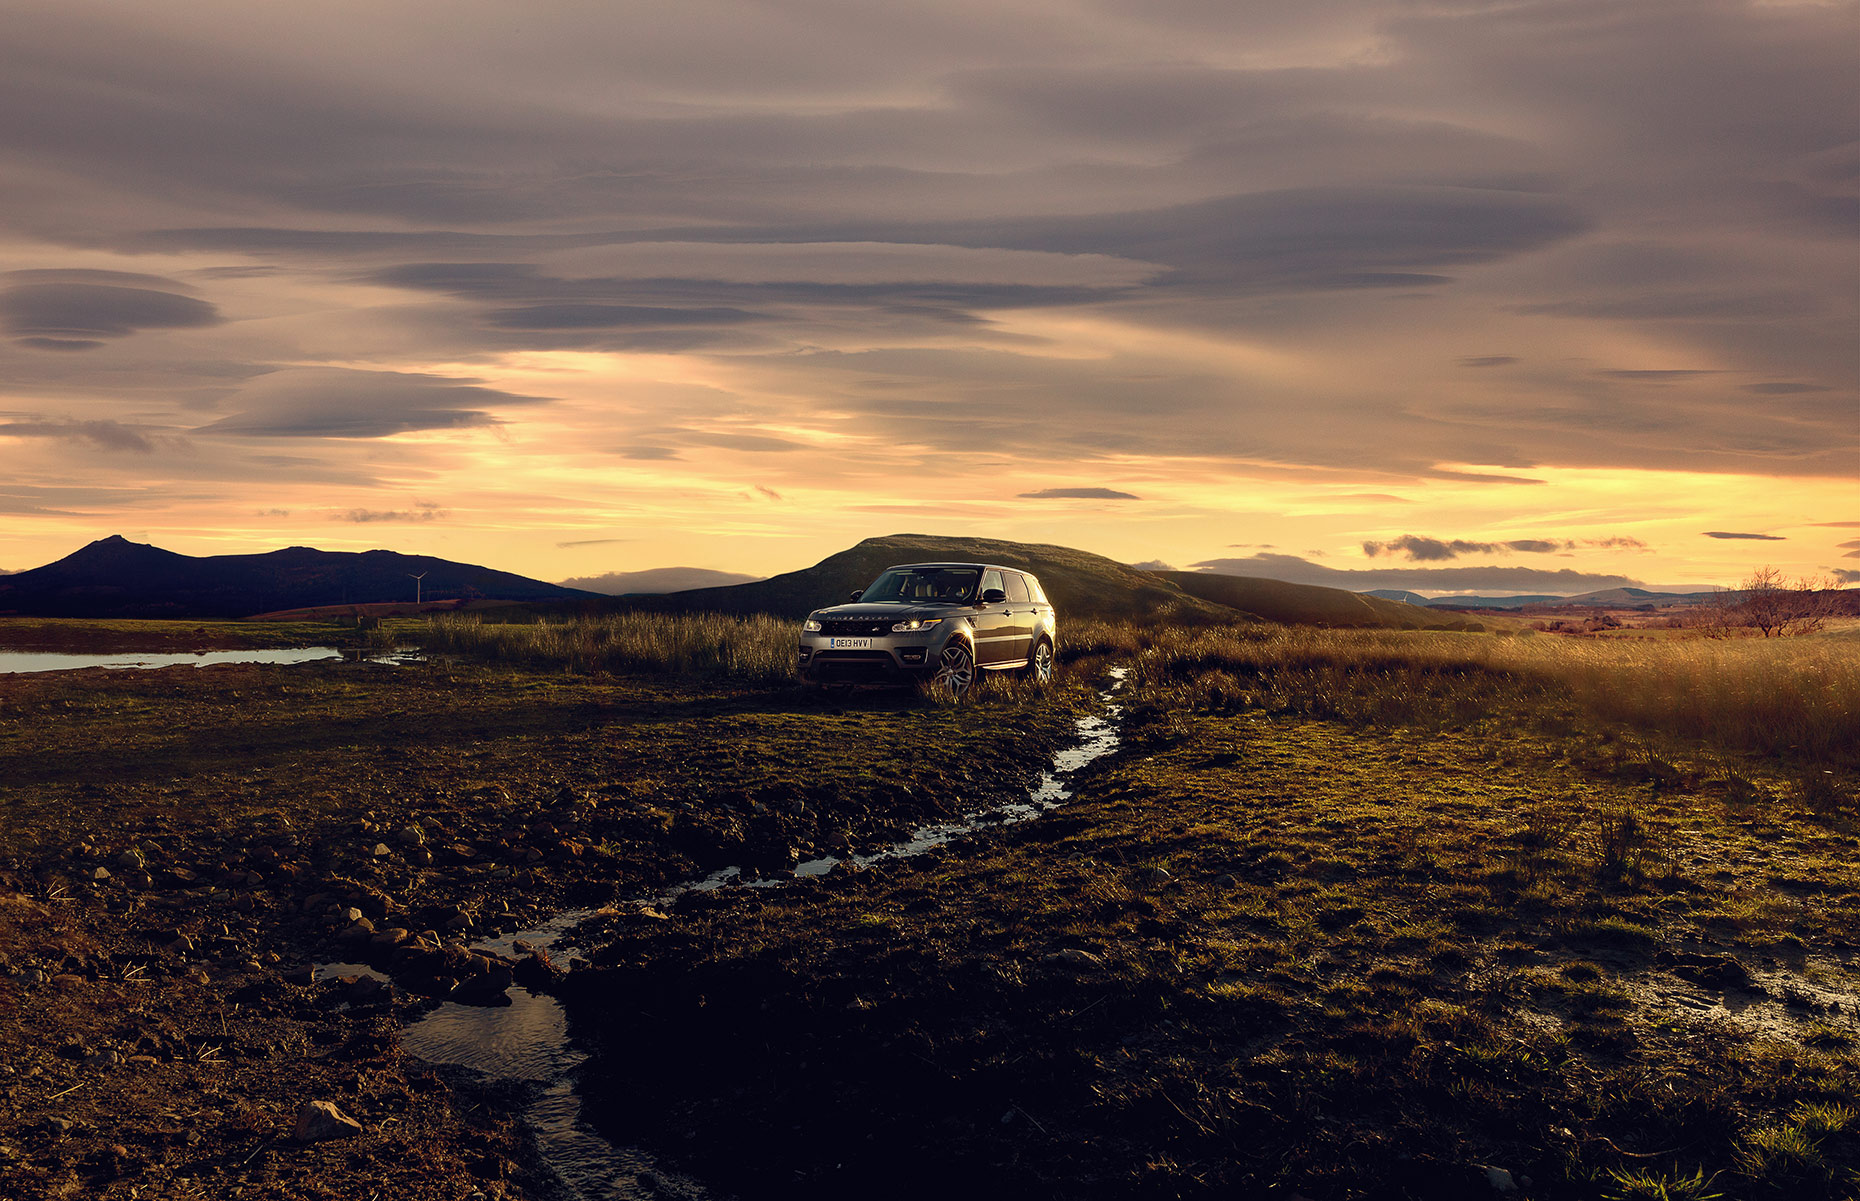 Range-Rover-sunset-final-websize